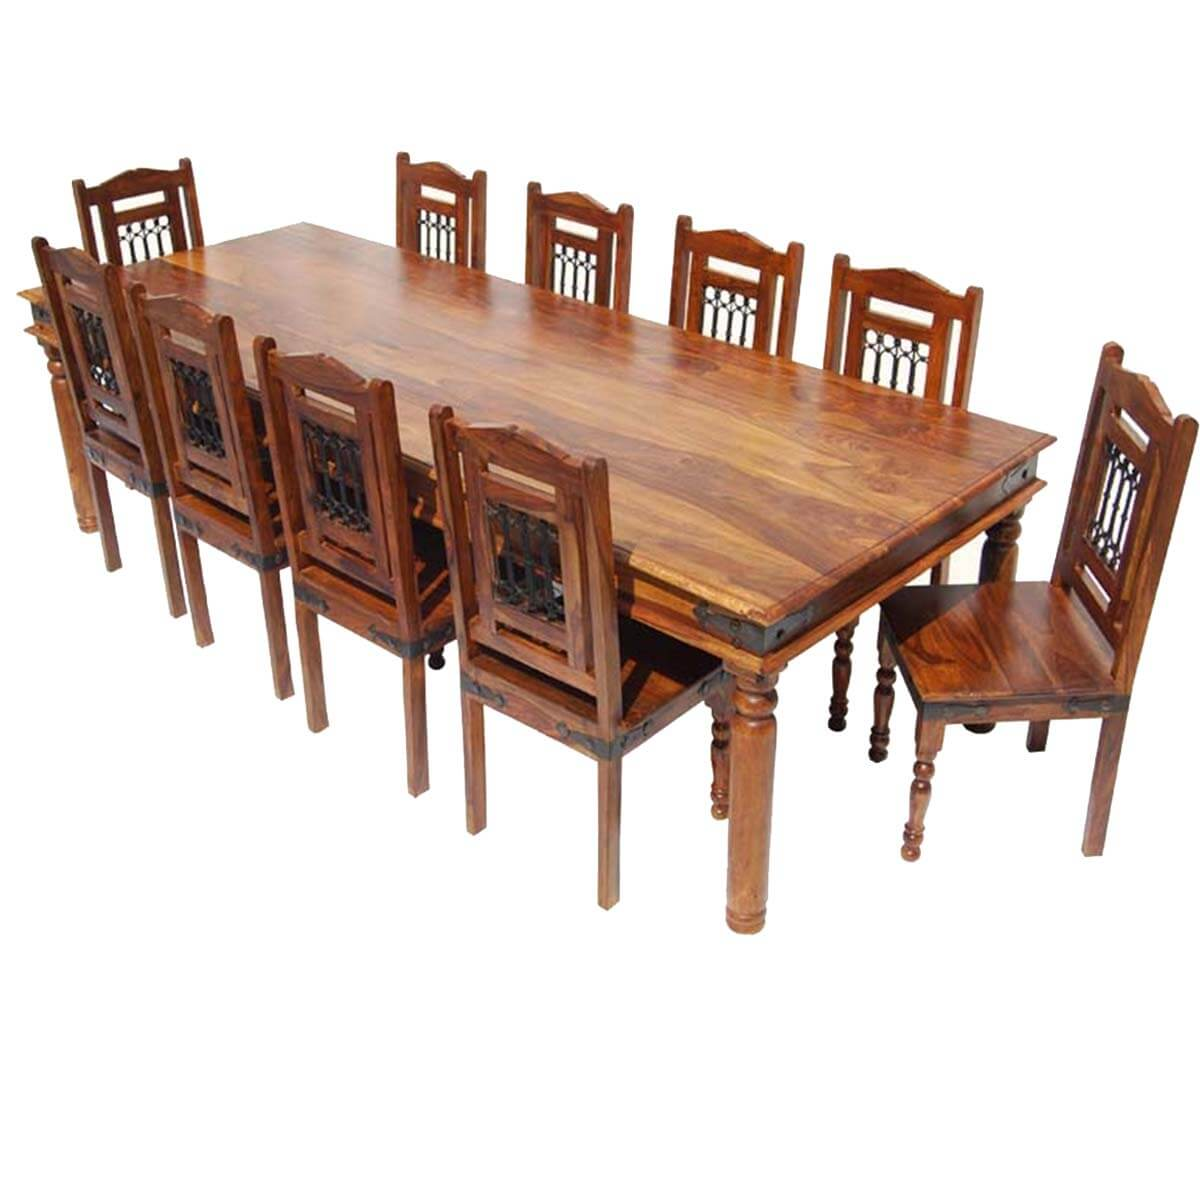 Solid wood large rustic dining room table chair sideboard set for Rustic dining room table